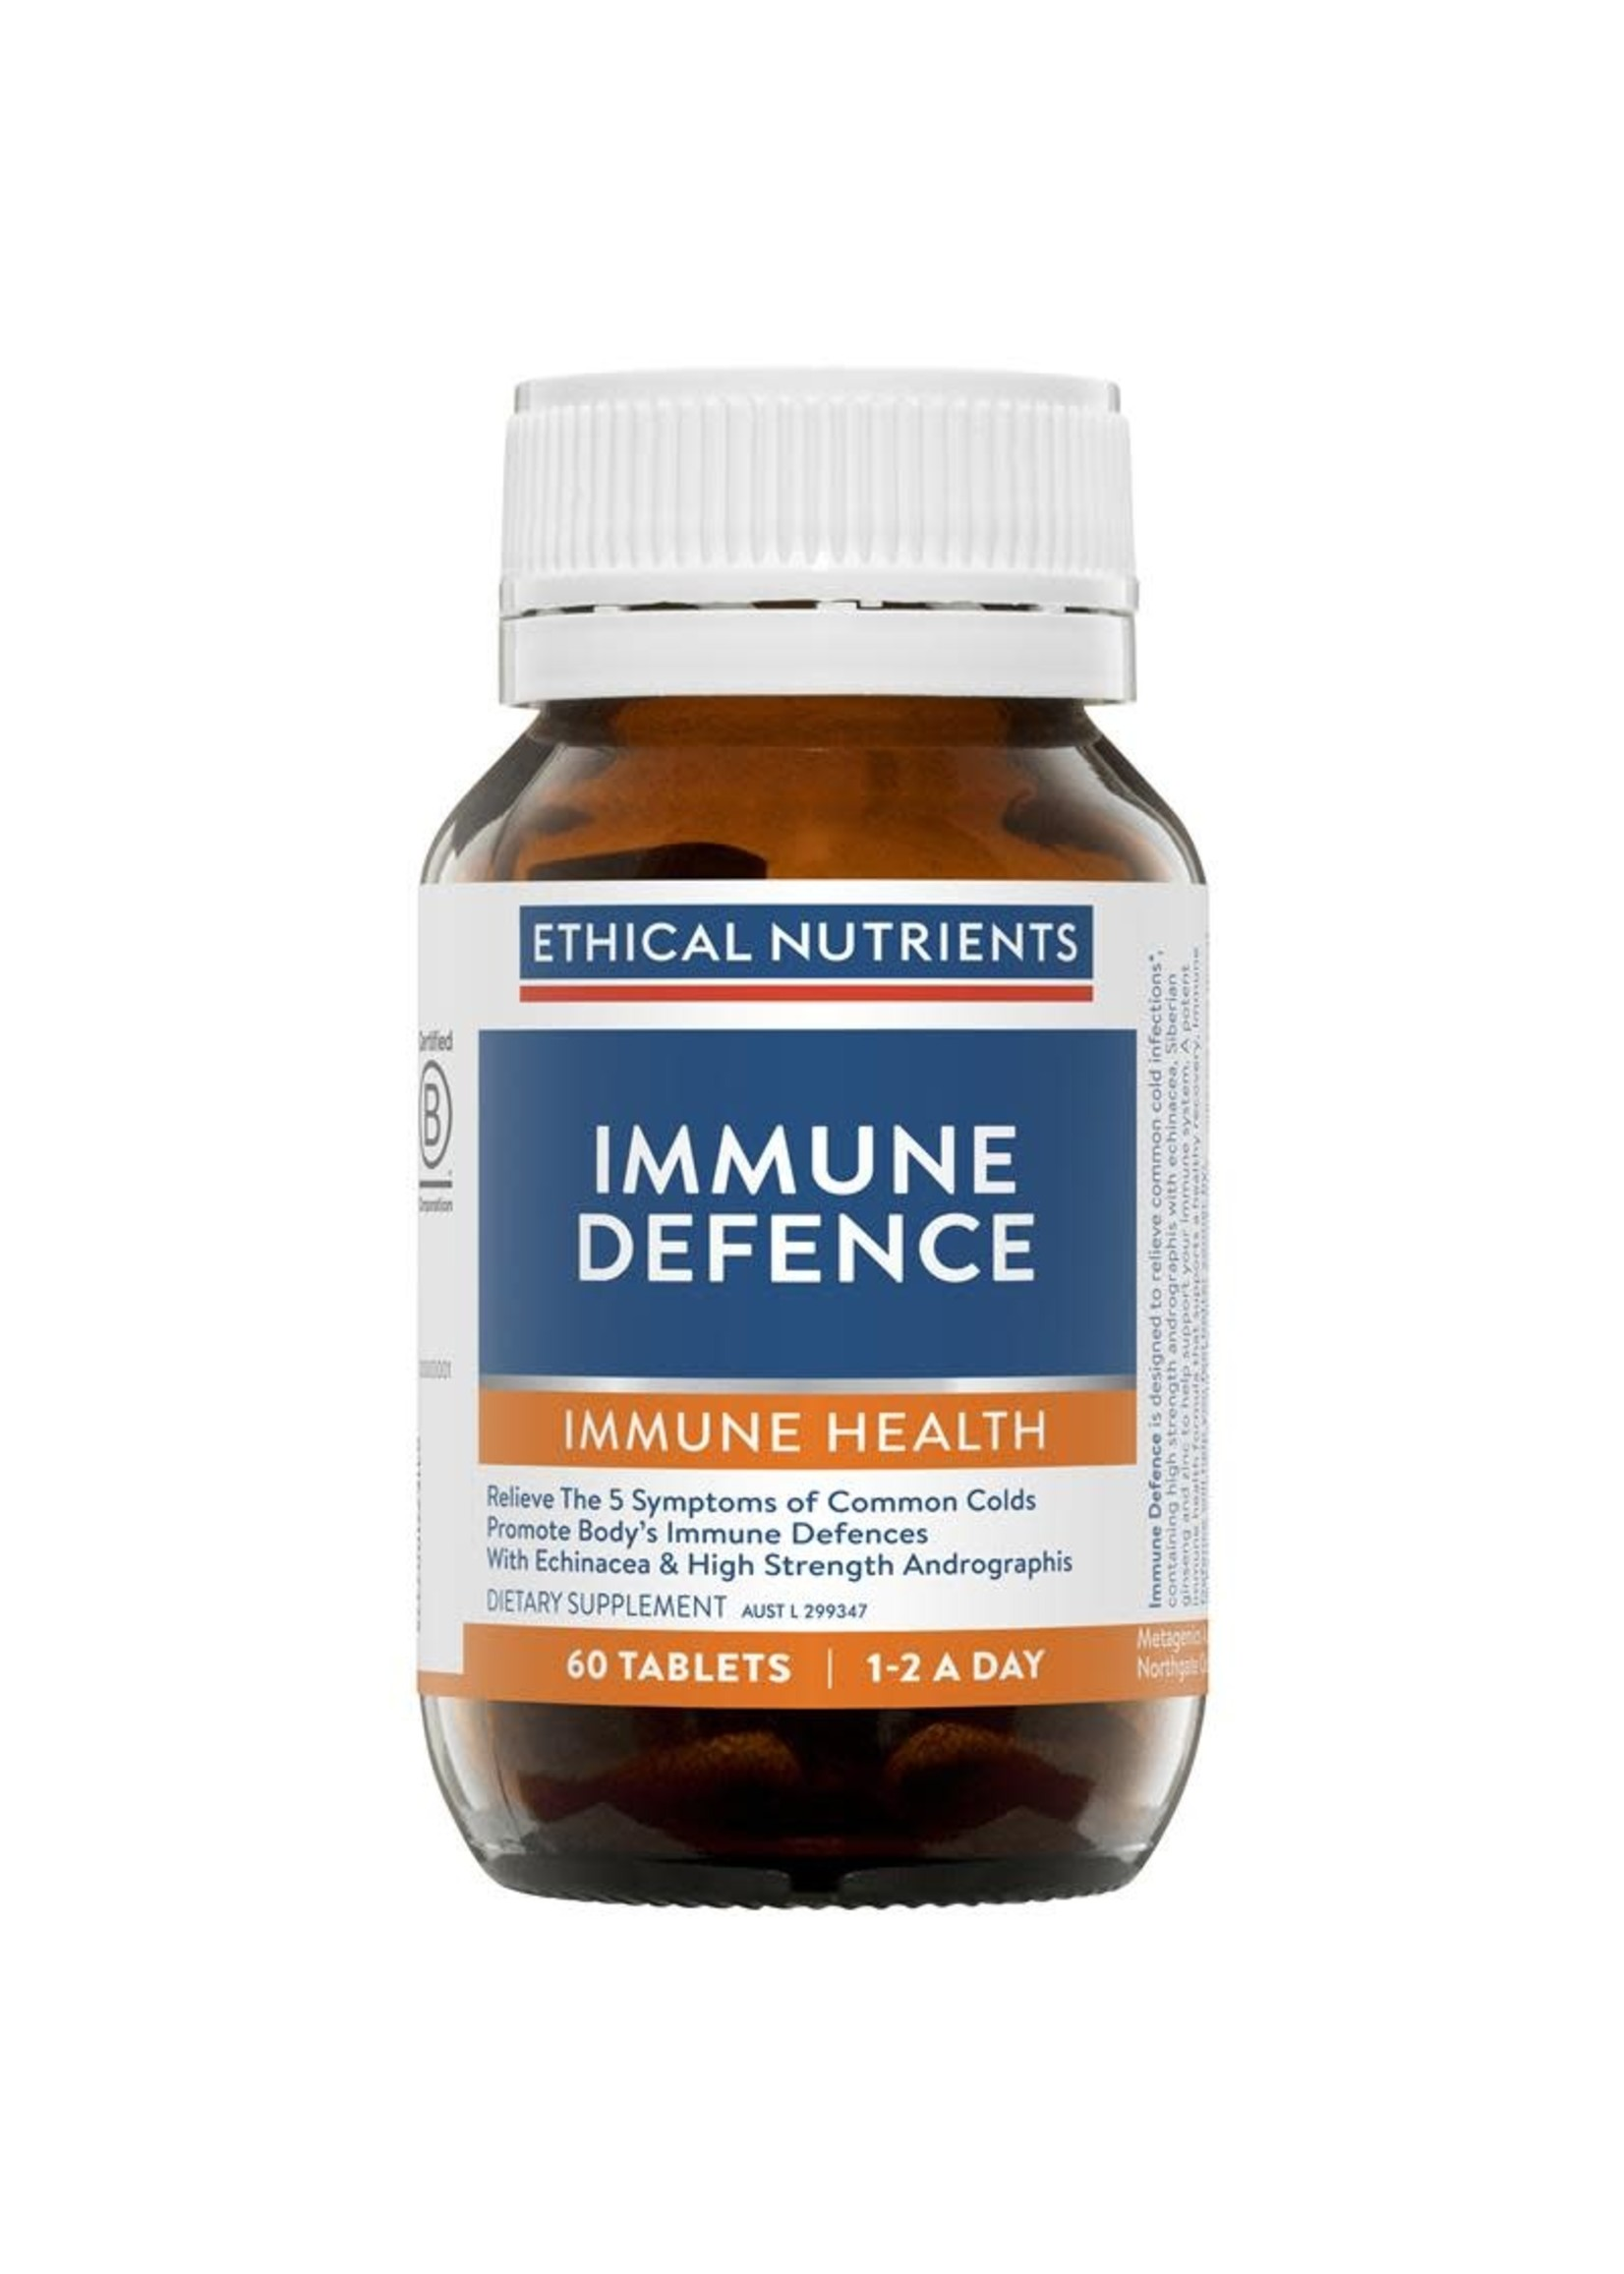 ETHICAL NUTRIENTS Ethical Nutrients Immune Defence 60 tabs